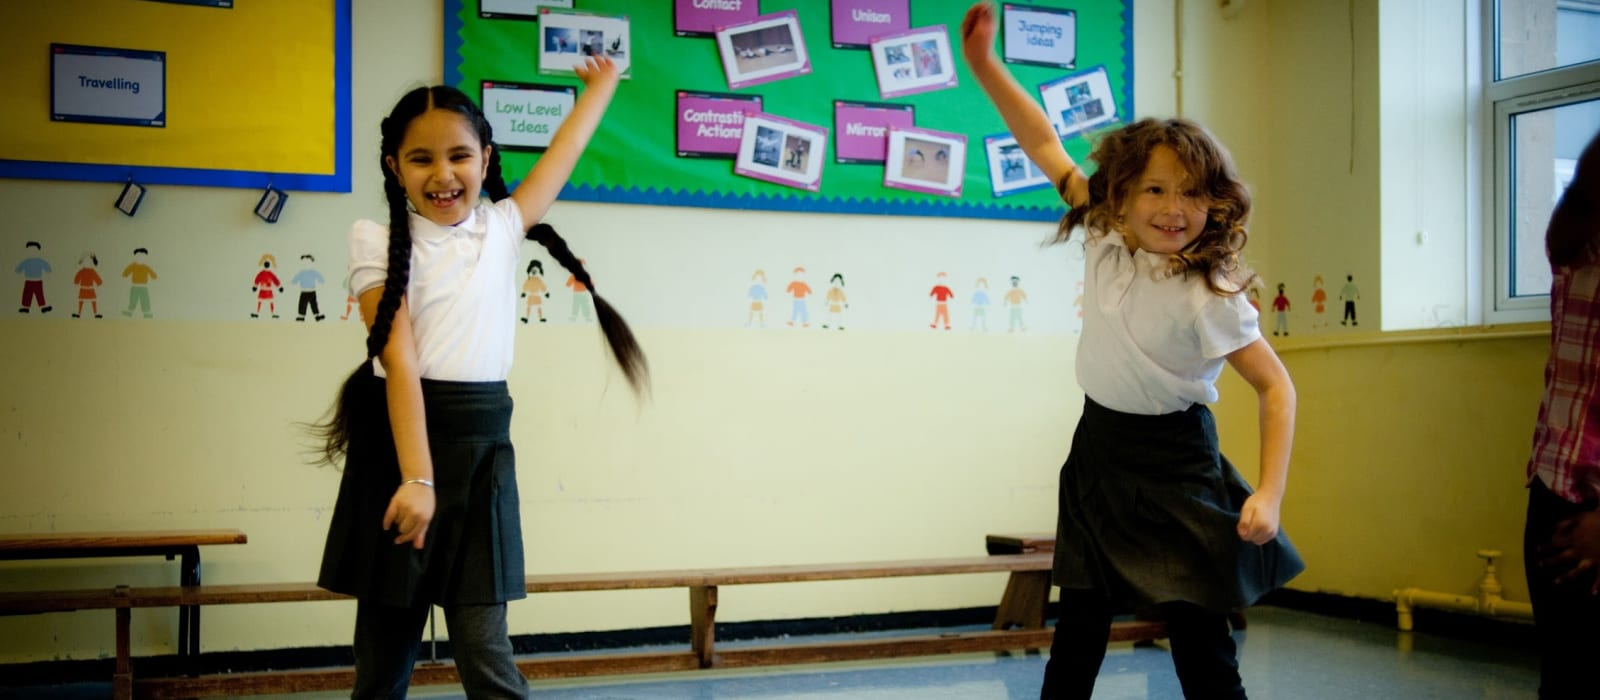 A Rubicon session in a school. Two dancers jumping.